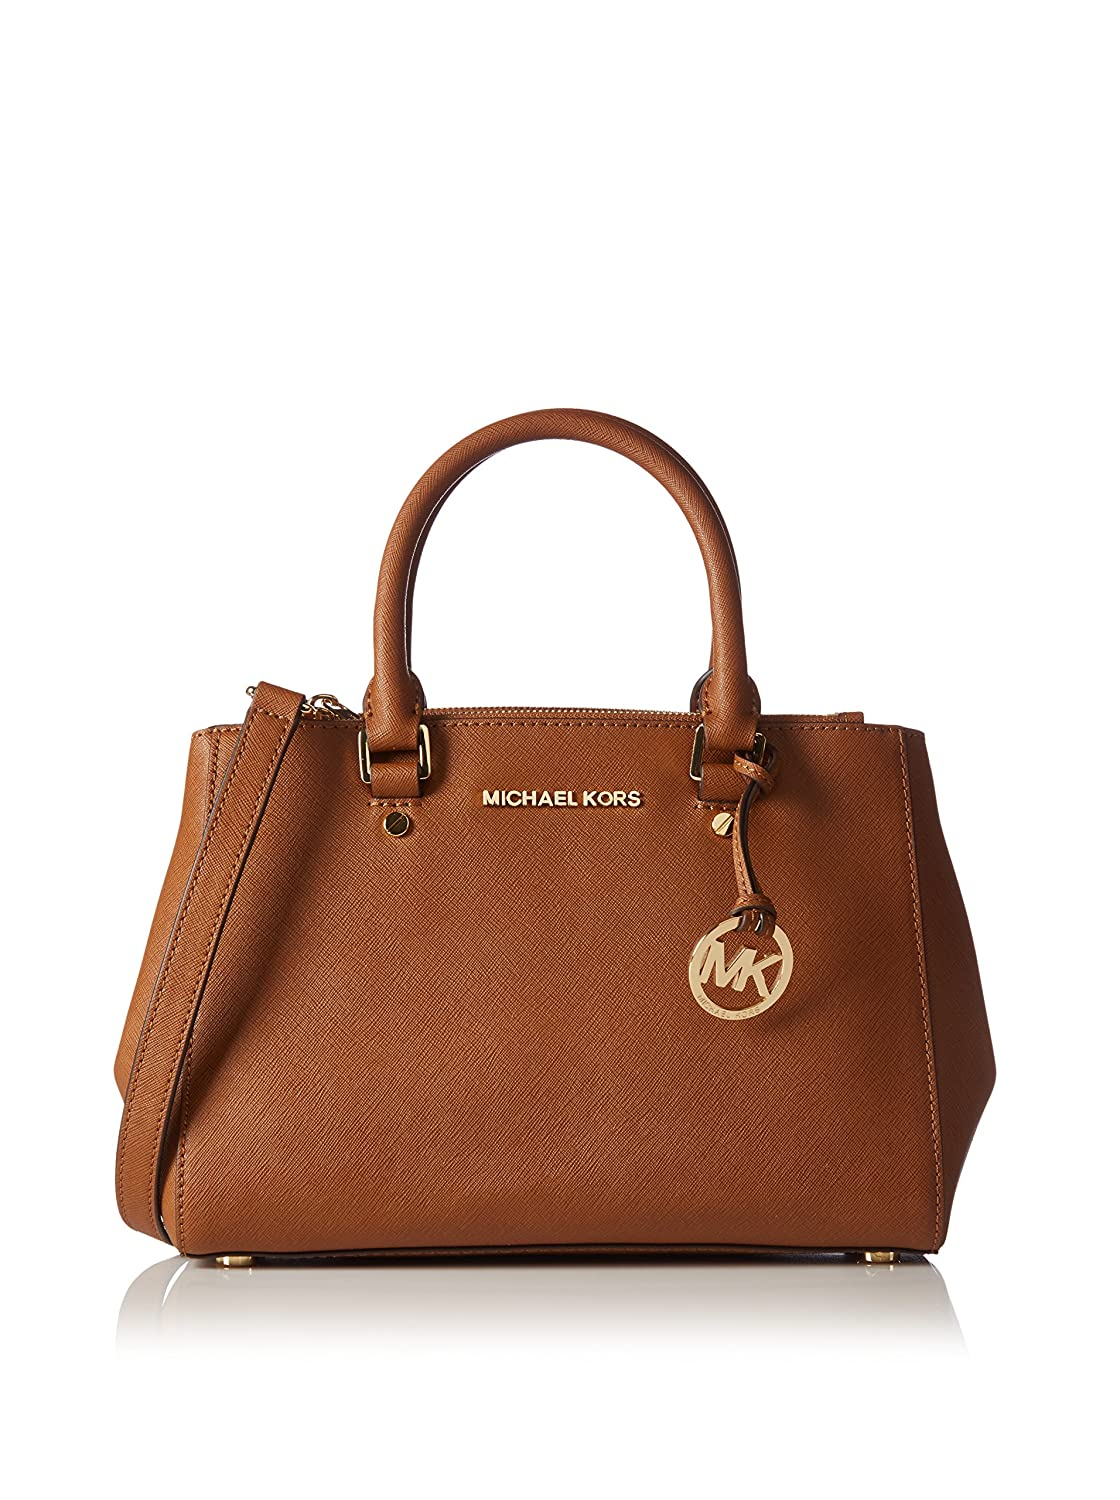 643039670a7b Amazon.com  Michael Kors Sutton Small Saffiano Leather Satchel in Luggage   Shoes